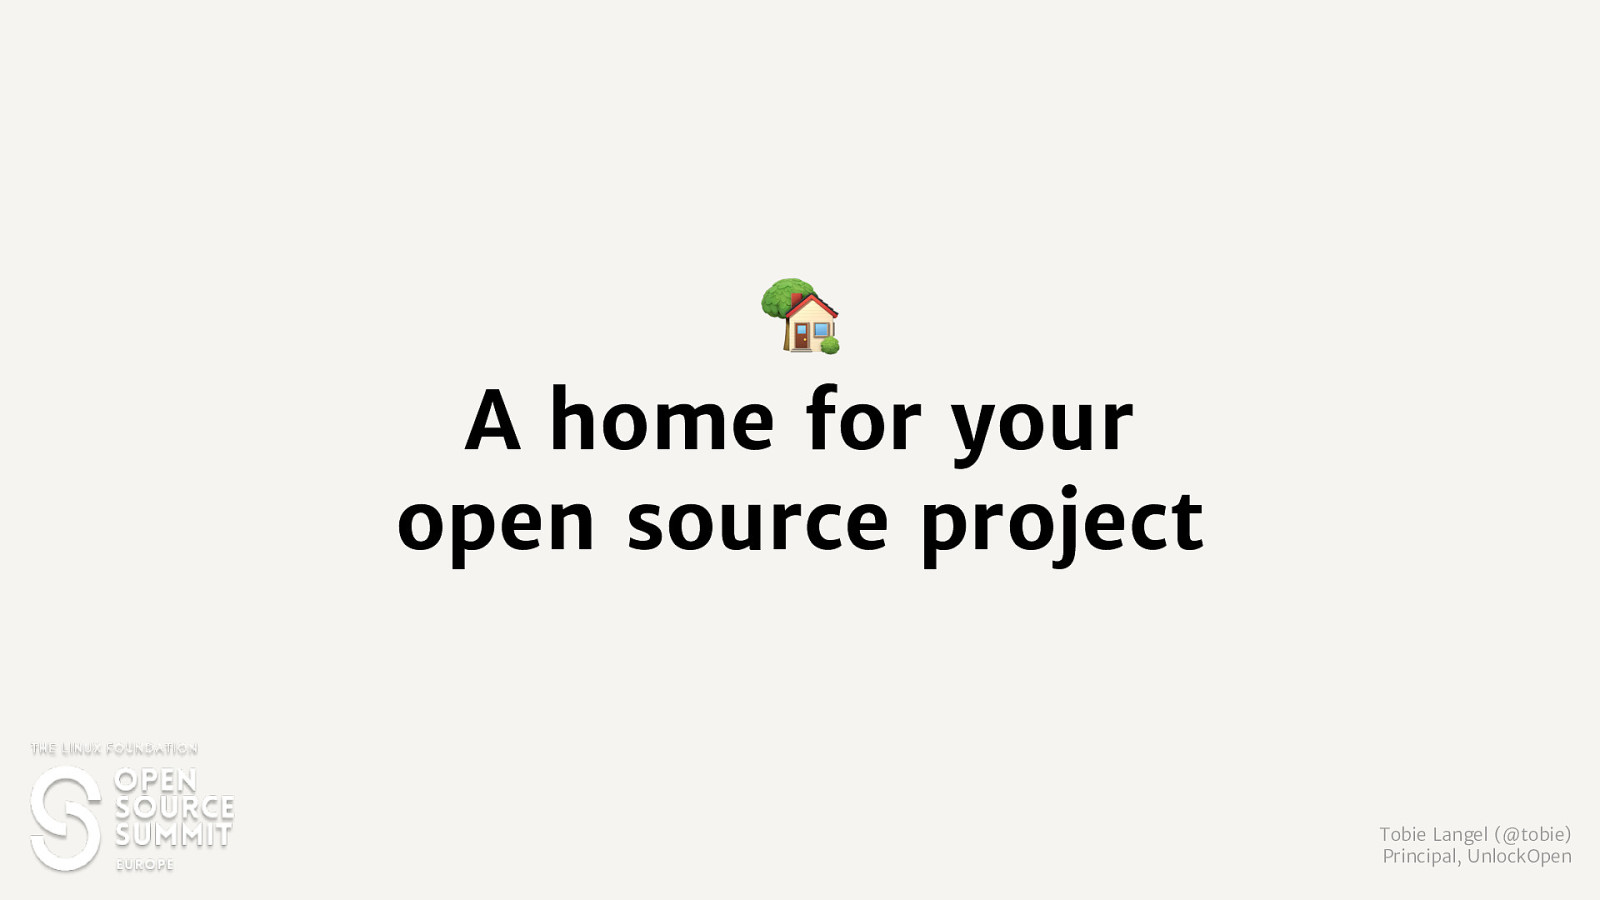 A Home for your open source project